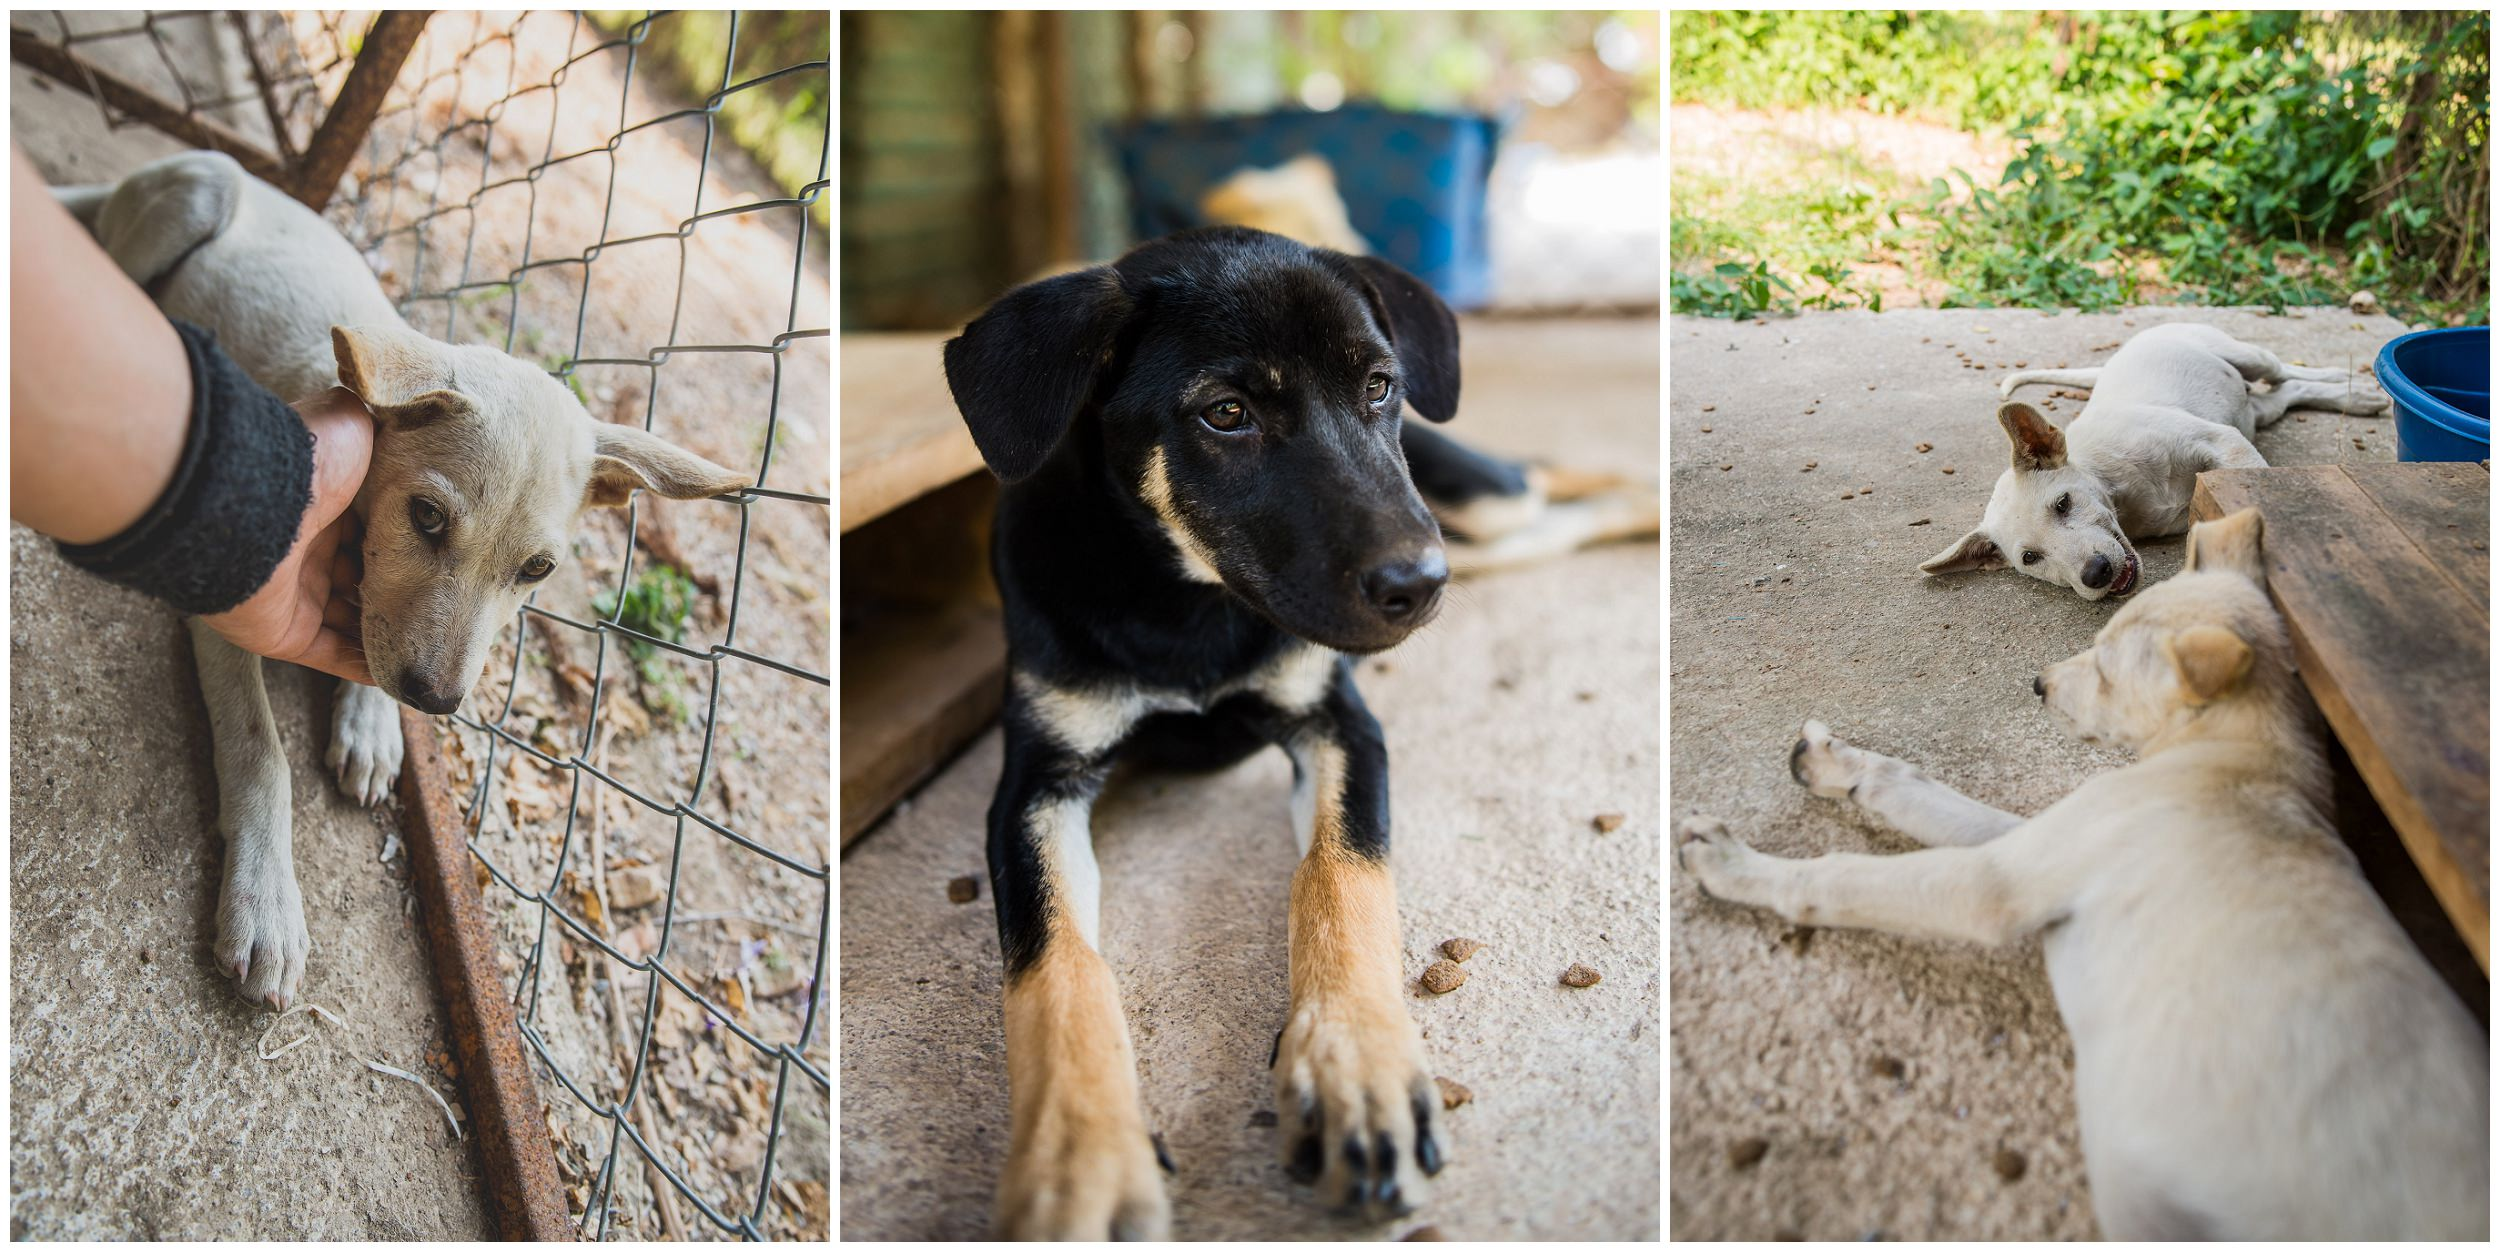 Headrock, dogs, rescue, shelter, puppies, bang saphan, Thailand